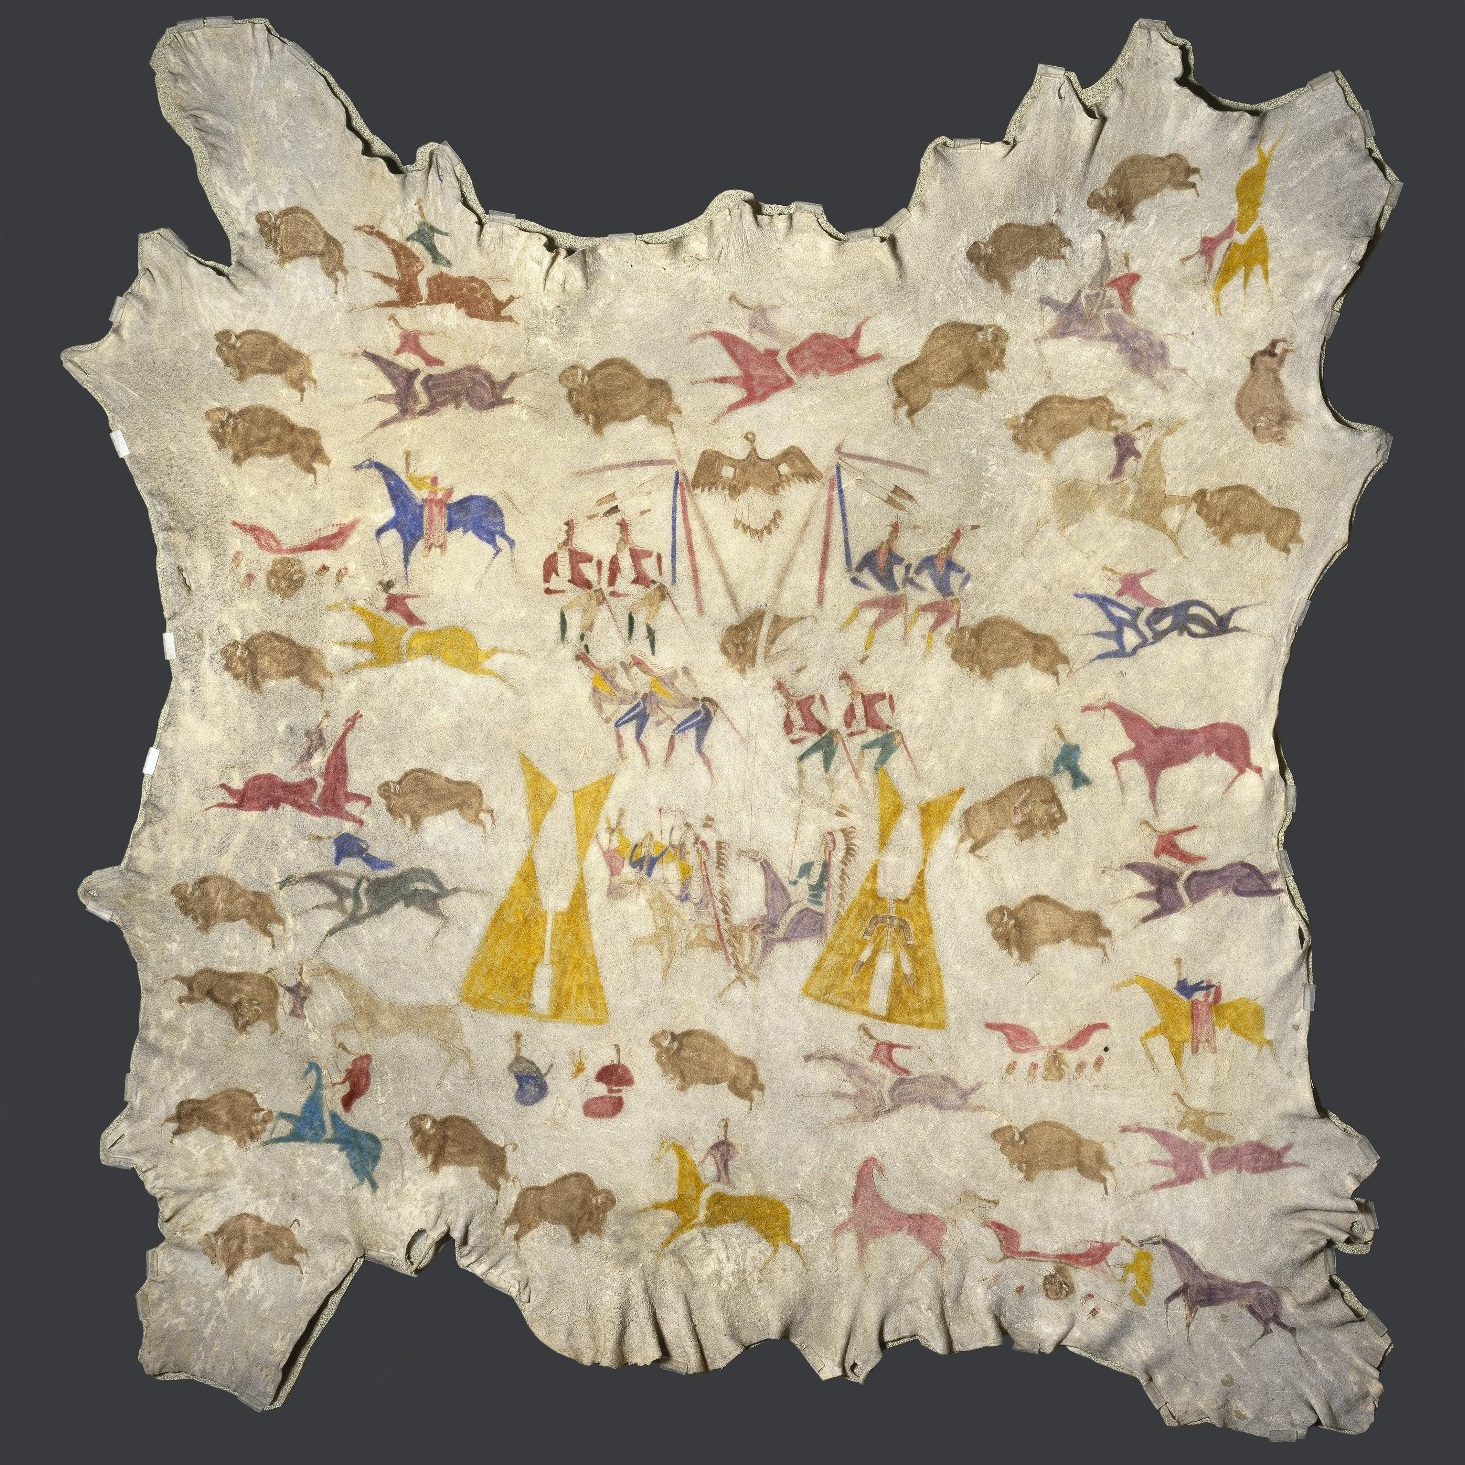 <p><i>Plains Native American Hide Painting</i>, circa 1900. Attributed to Cadzi Cody, also known as Cotsiogo (1865–1912), Shoshone artist. Montana. Elk hide, pigment. Brooklyn Museum, Dick S. Ramsay Fund, 64.13</p>